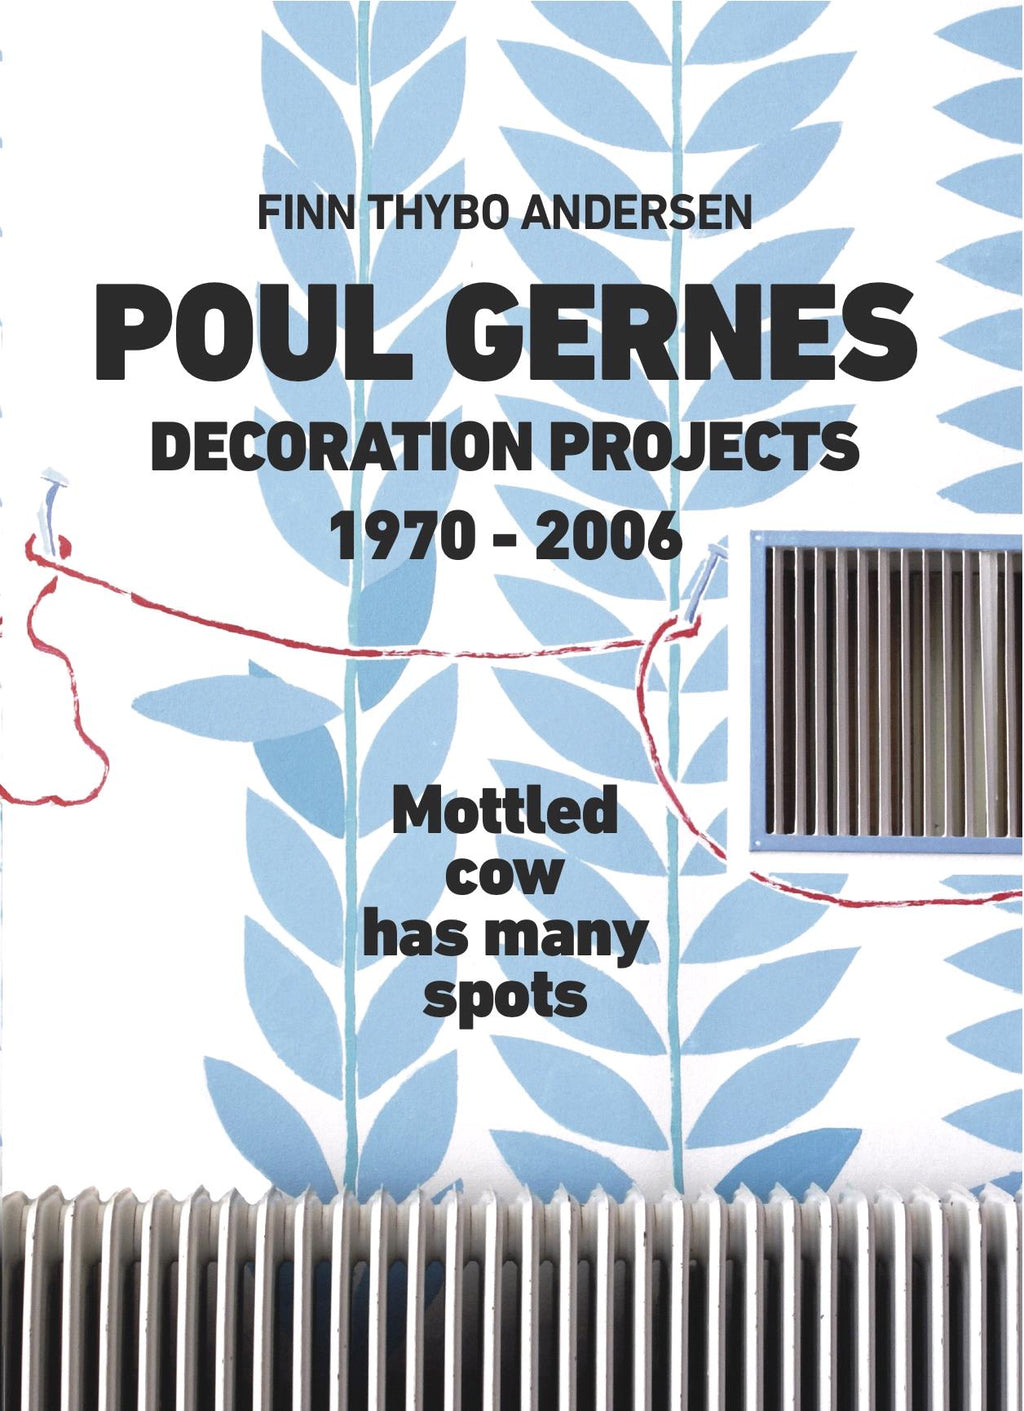 X.lucky Books, FINN THYBO ANDERSEN: POUL GERNES - DECORATION PROJECTS 1970-2006. Mottled cow has many spots. Cologne 2018